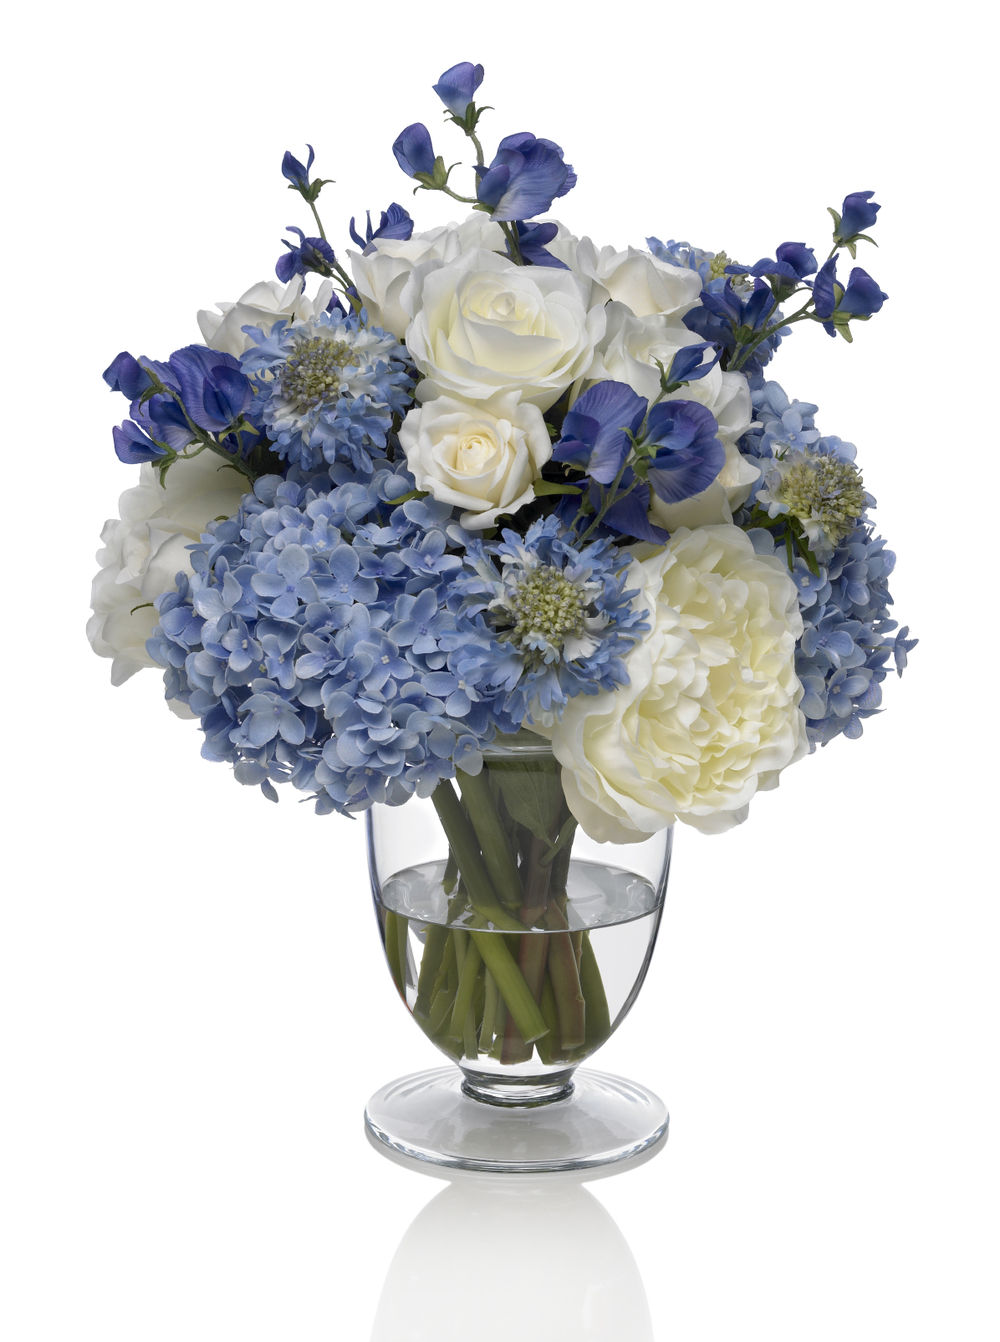 blue and white arrangement istock.jpg